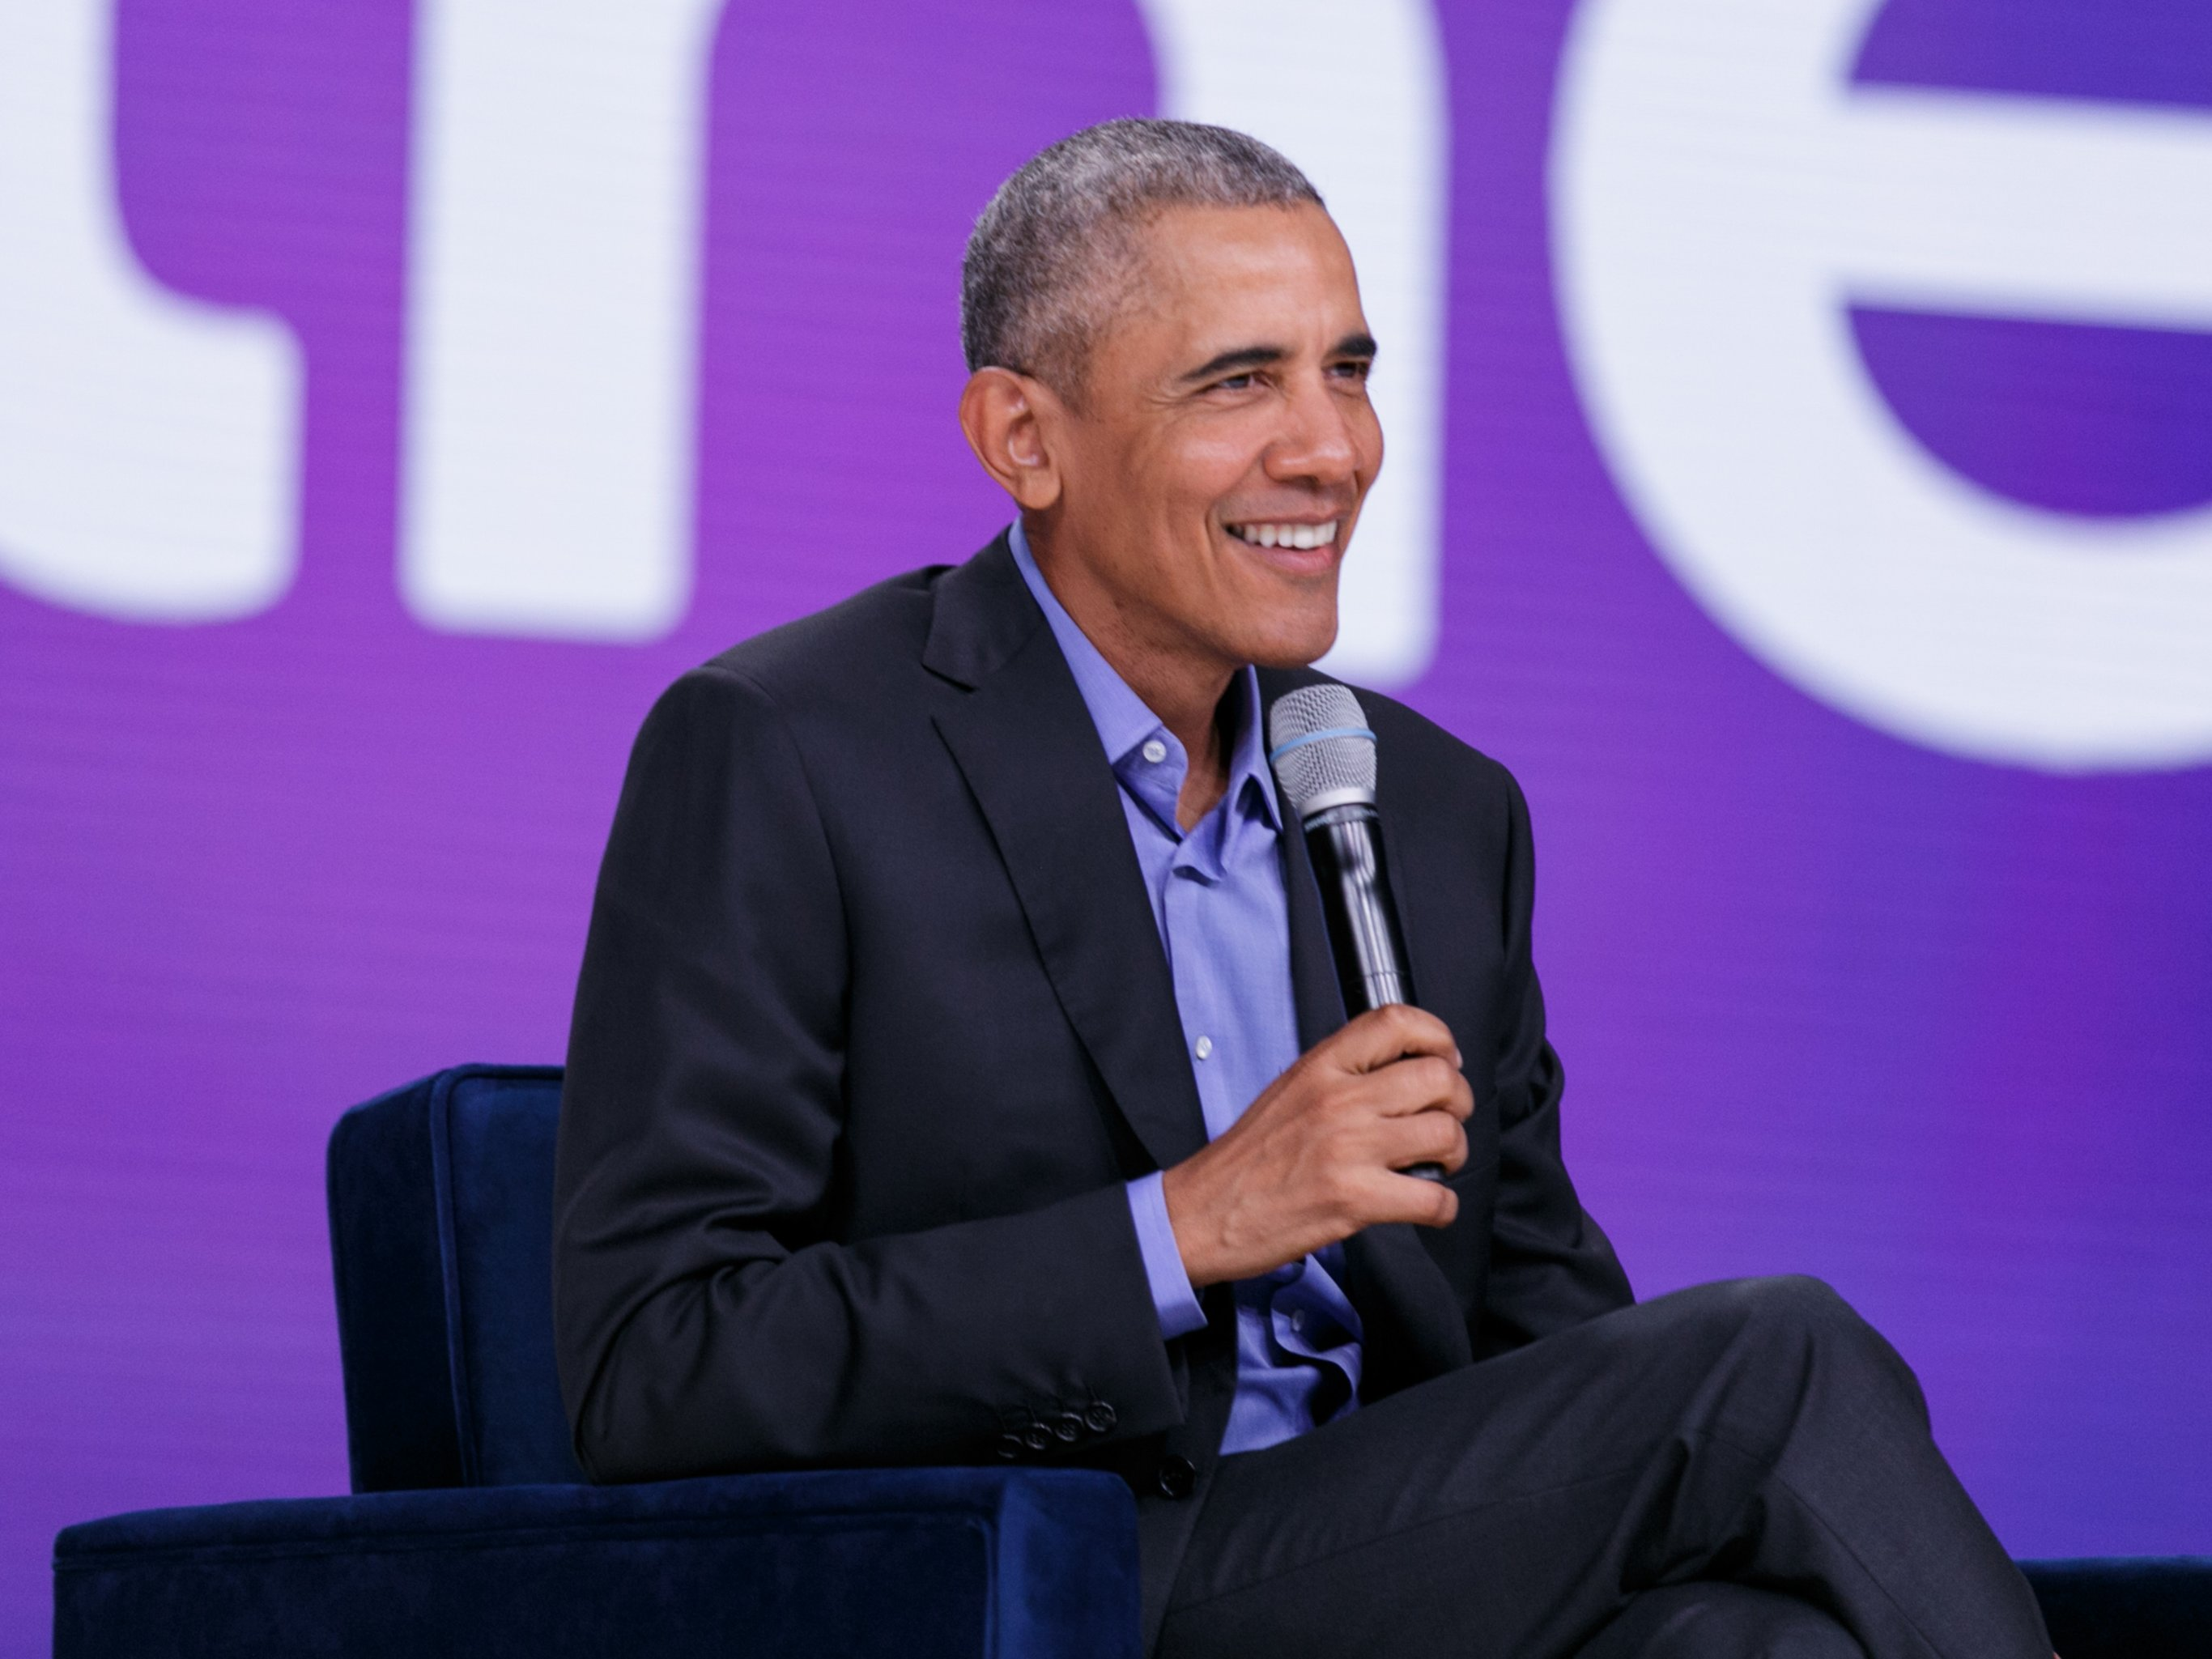 Obama visited a top-tier Sand Hill Road venture capital firm on a Silicon Valley trip